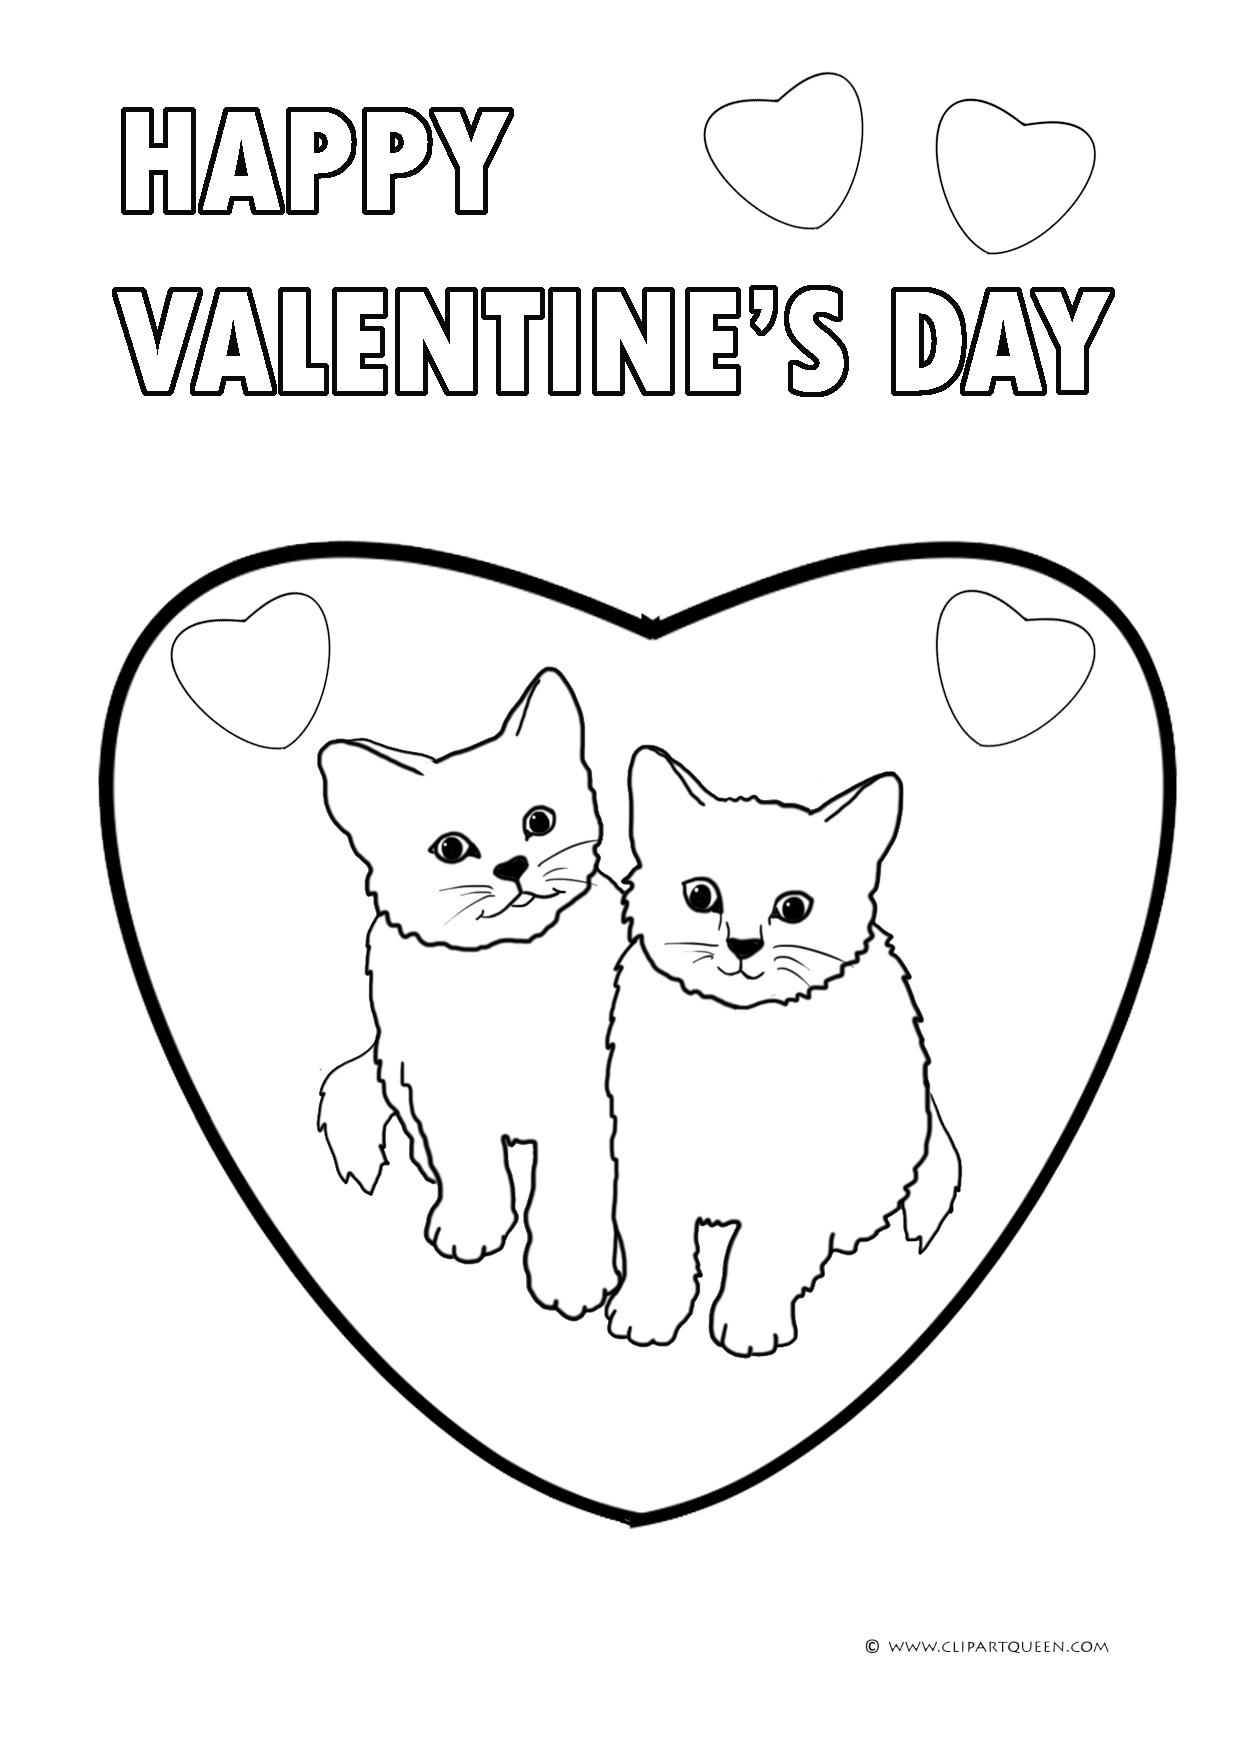 KITTENS clipart valentine's day 11 a day greeting Day